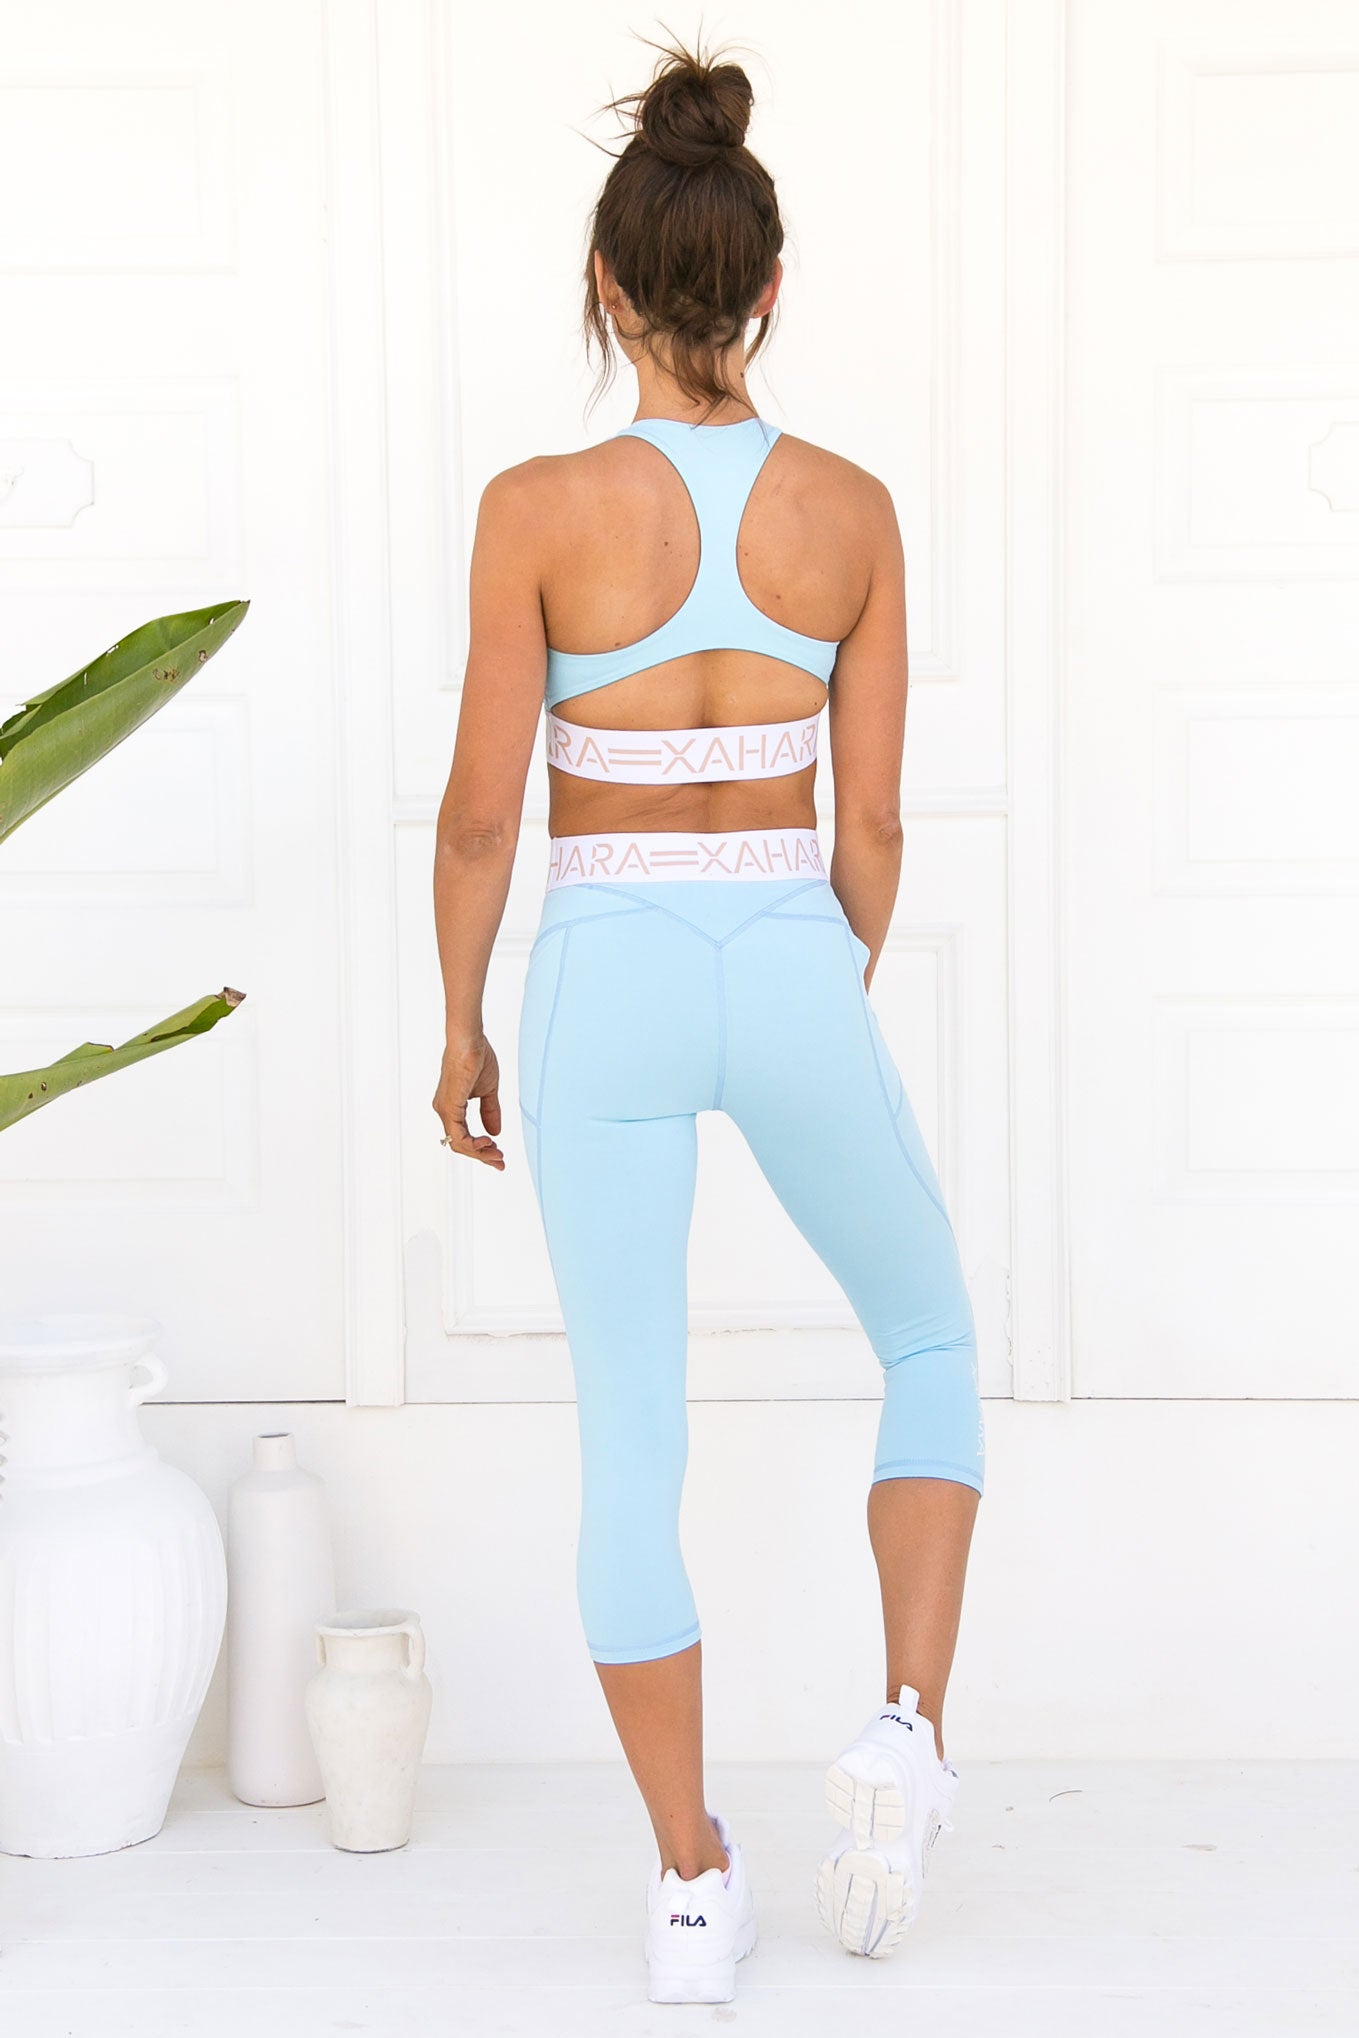 Chloe Sports Bra - Powder Blue - Xahara Activewear